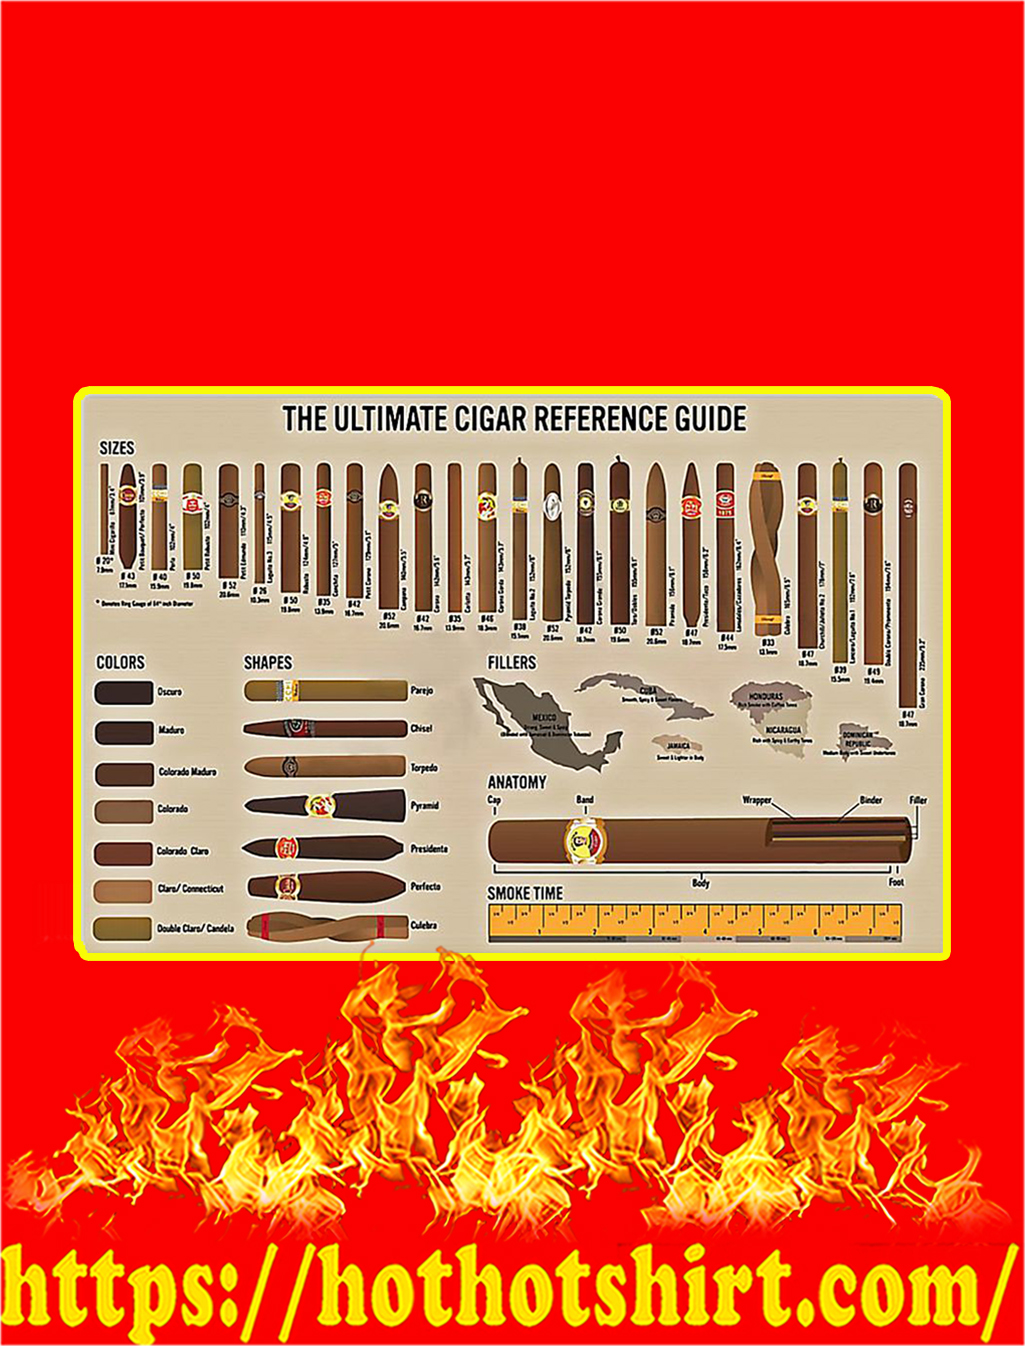 The Ultimate Cigar Reference Guide Poster - 17x11